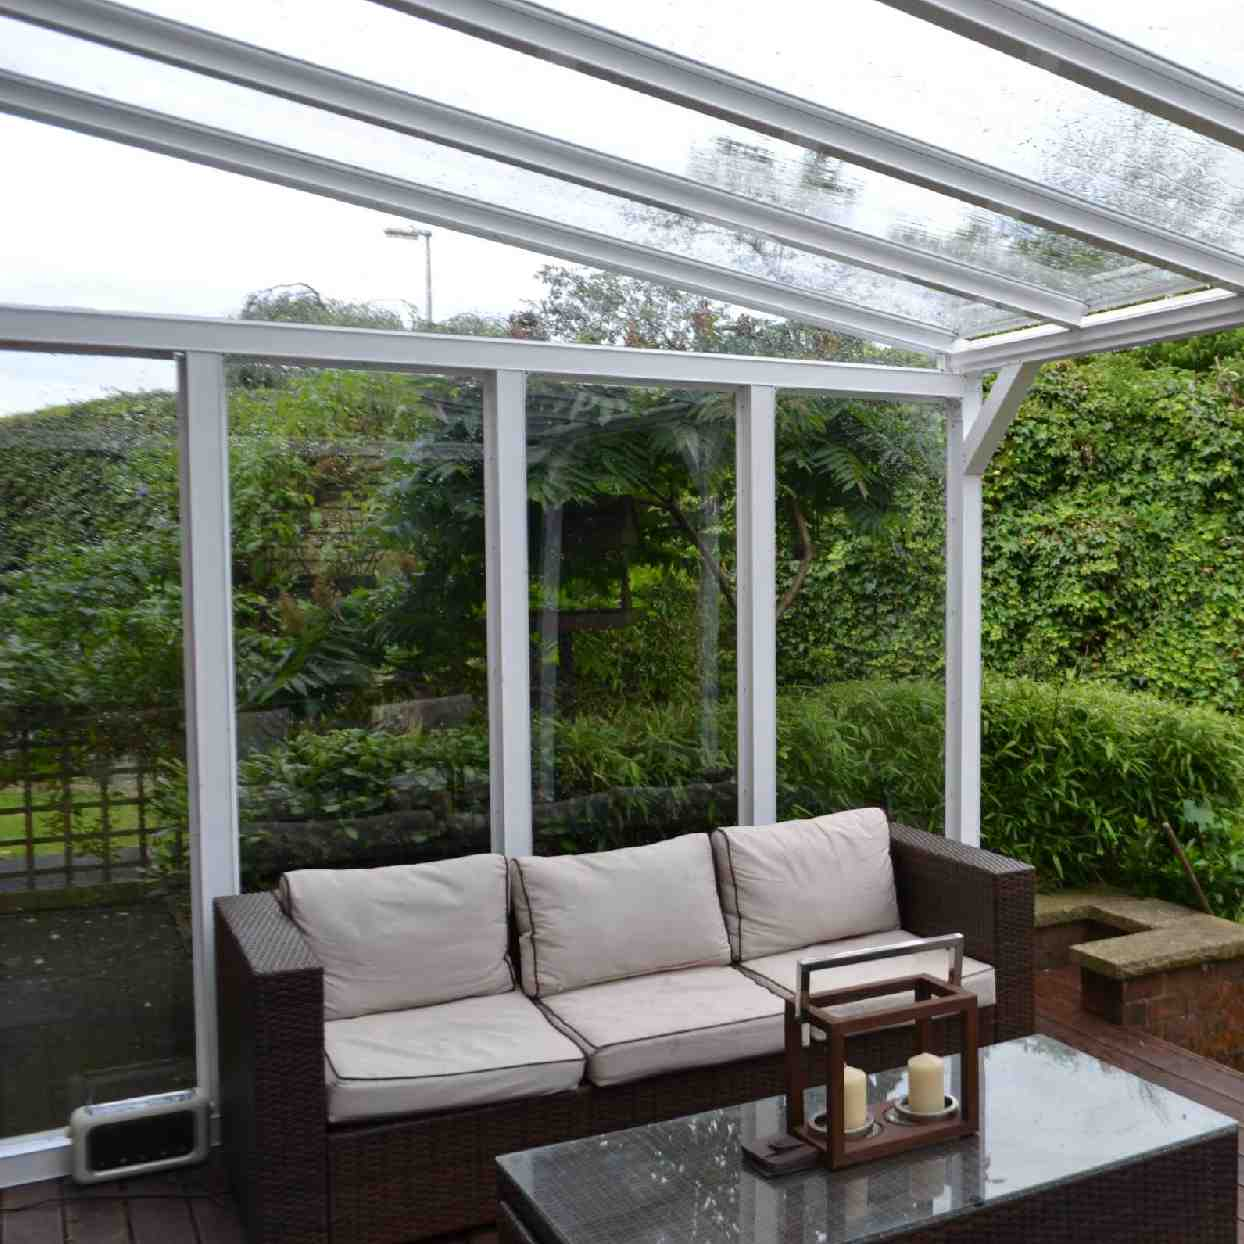 Buy Omega Verandah with 16mm Polycarbonate Glazing - 10.6m (W) x 2.0m (P), (5) Supporting Posts online today